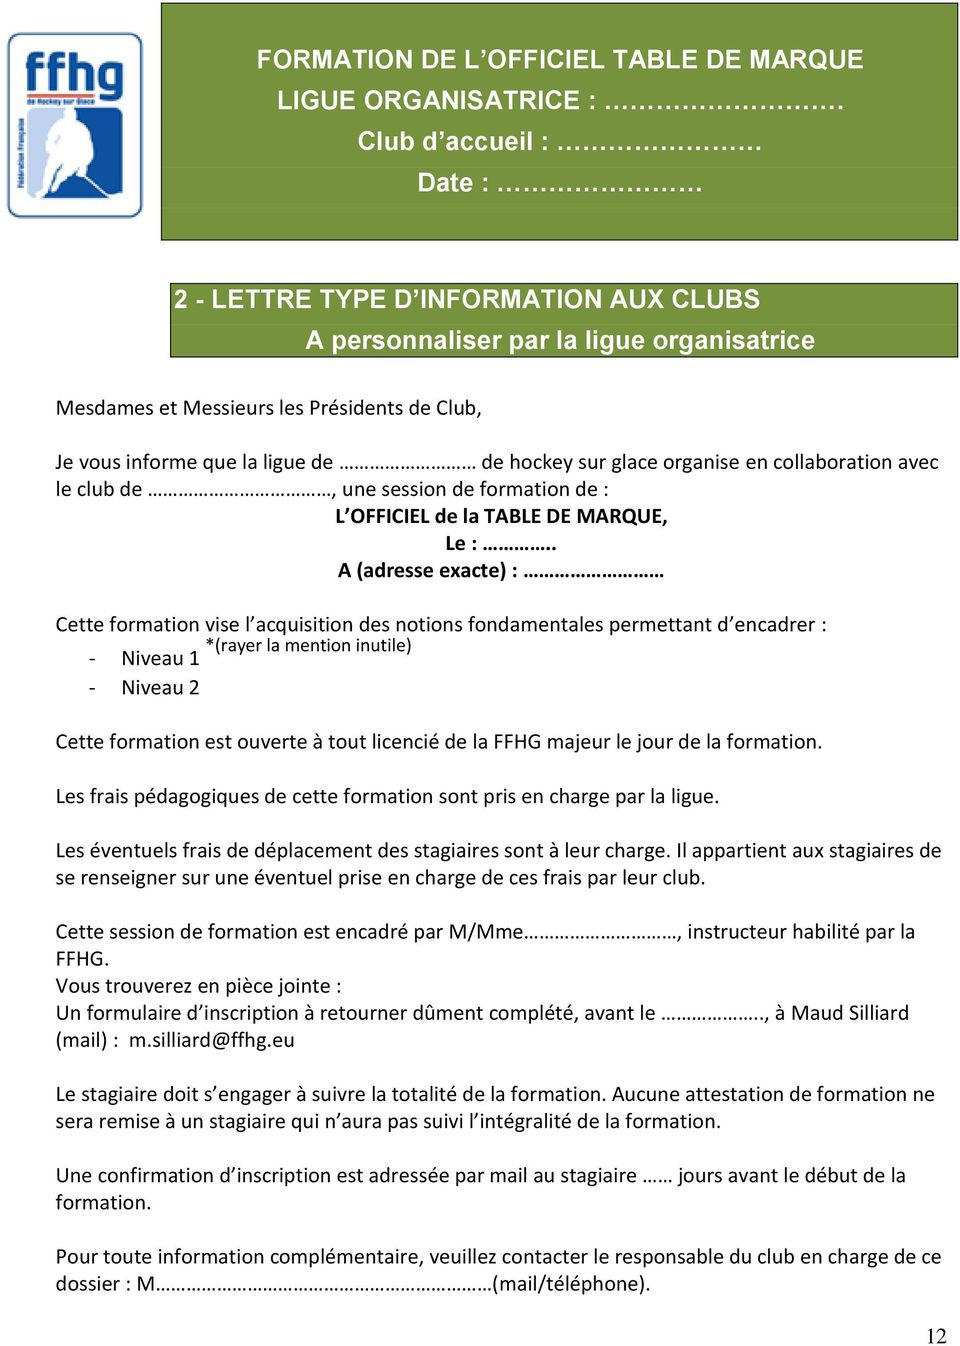 glace organise en collaboration avec le club de, une session de formation de : L OFFICIEL de la TABLE DE MARQUE, Le :.